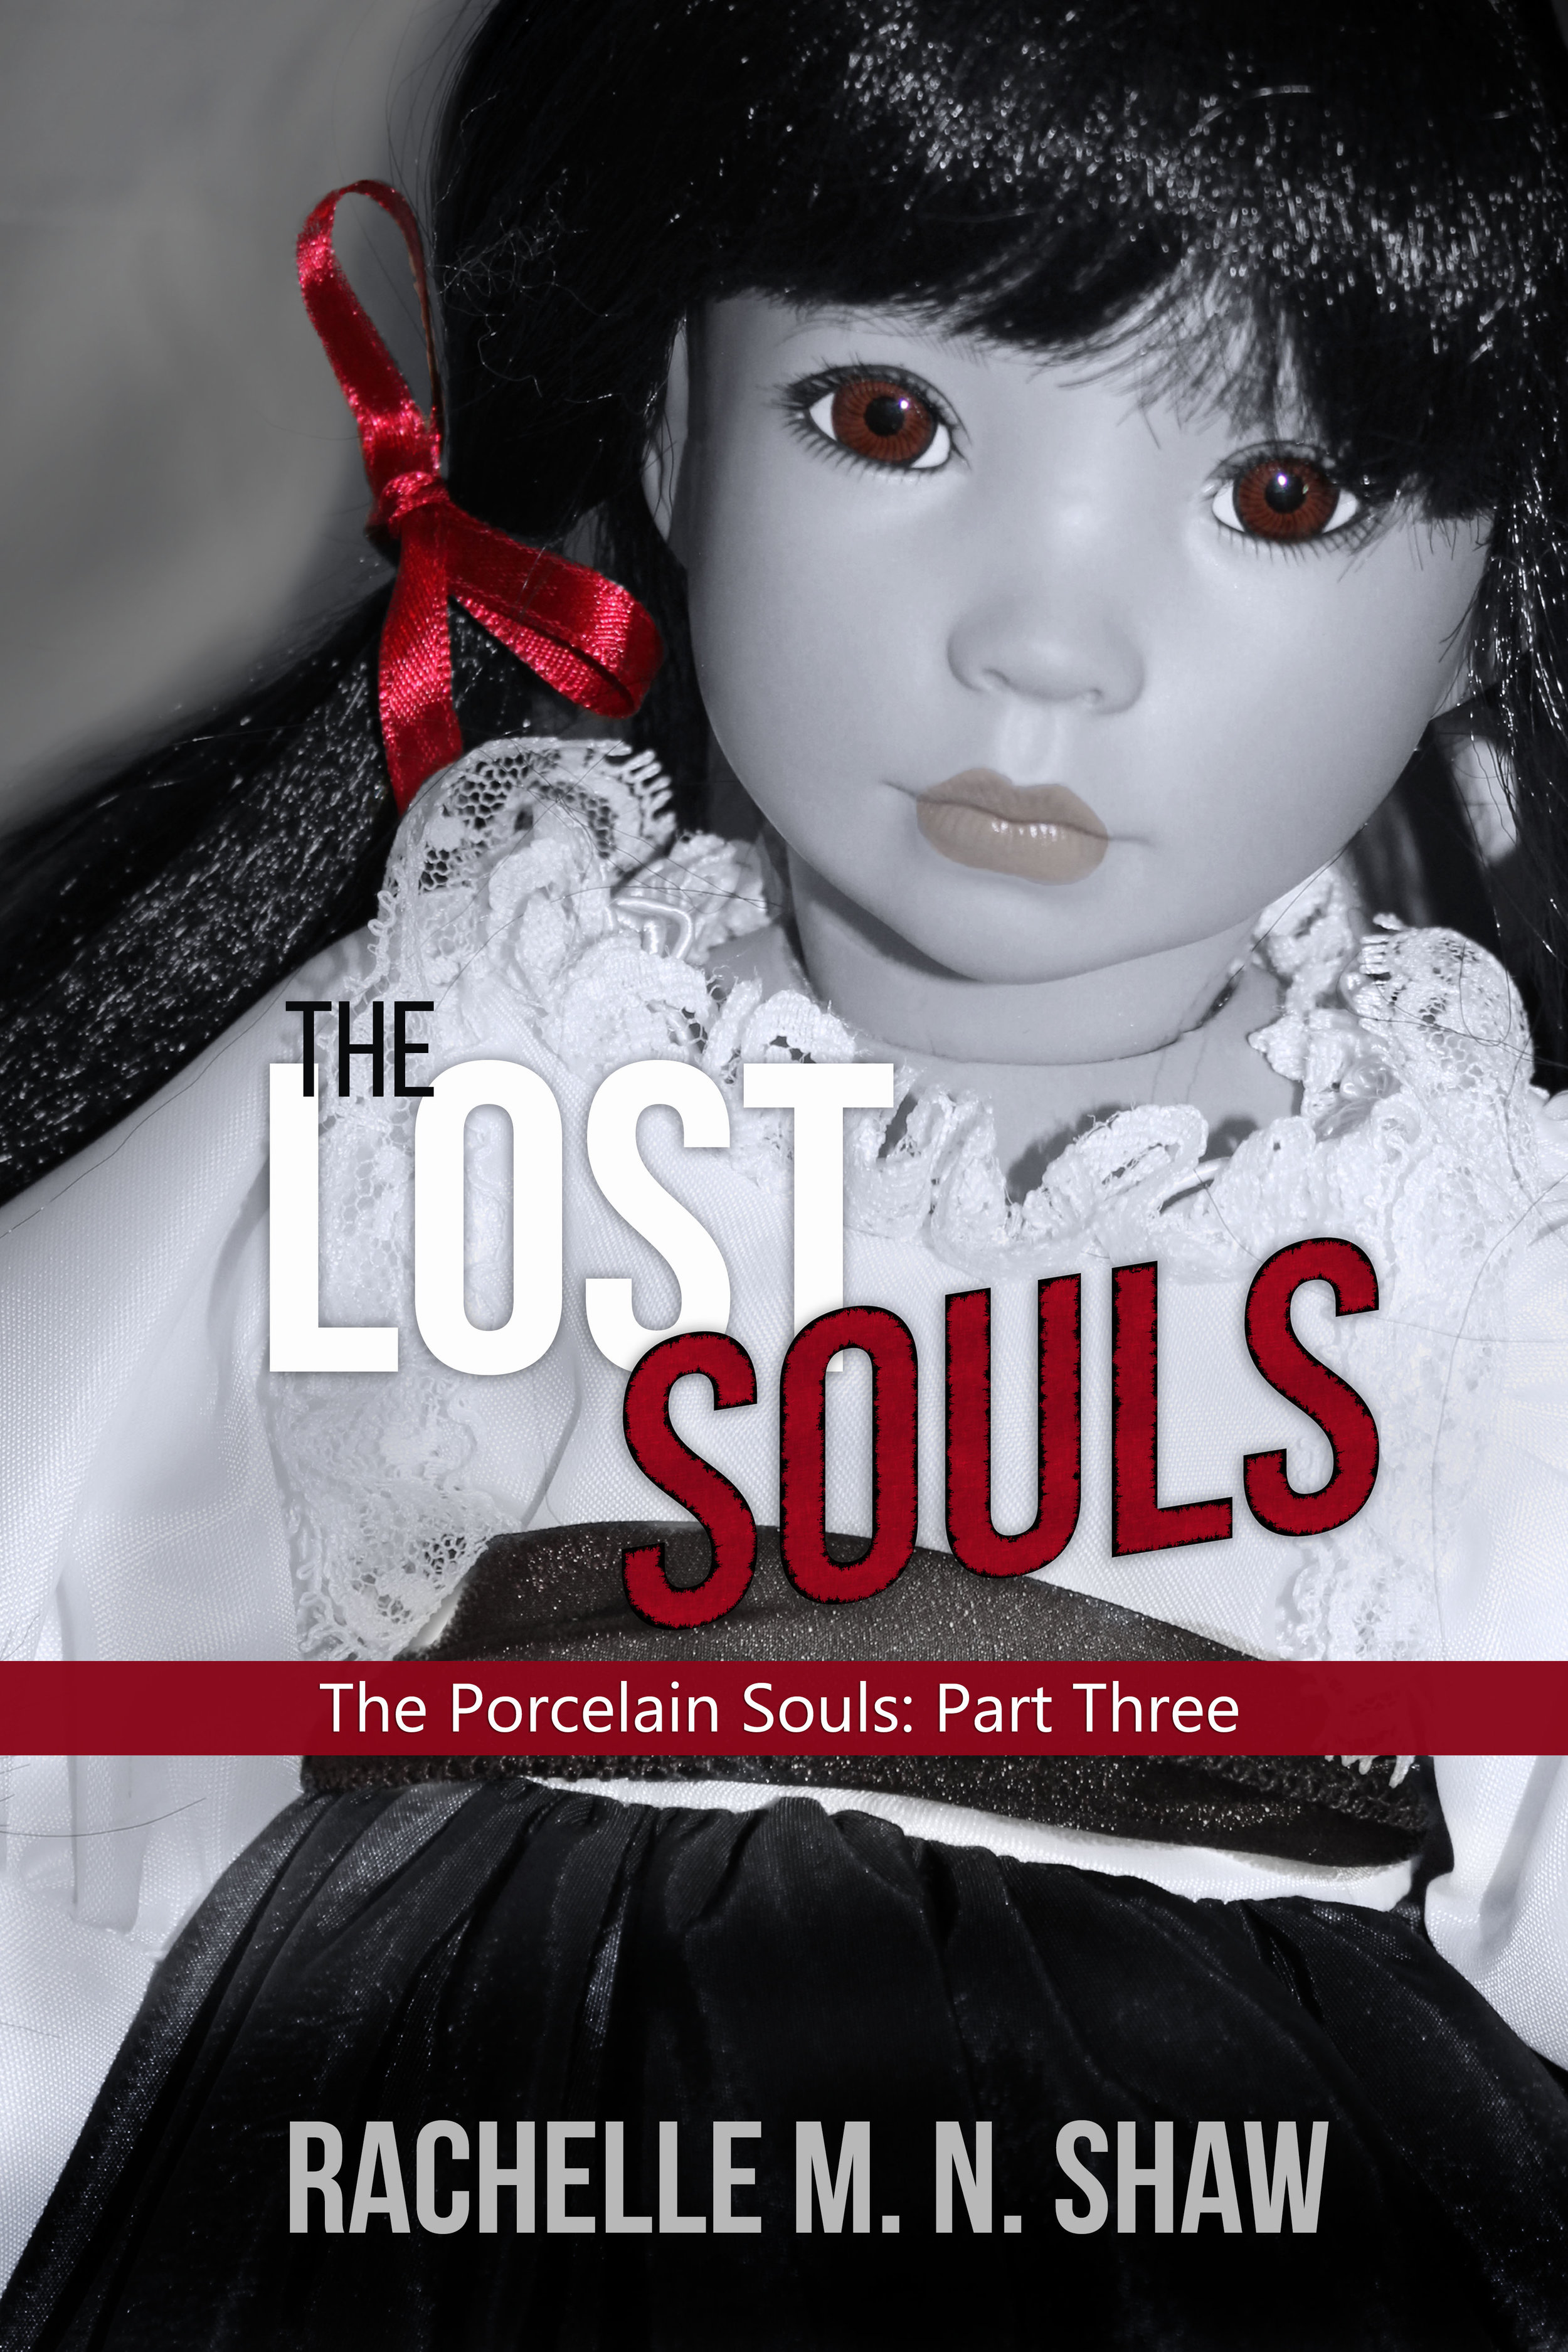 Part 3 of The Porcelain Souls Series: The Lost Soul - Pre-order coming soon to Amazon!A dead cop and a string of mysterious disappearances set the town of Credence on edge. Despite the growing dangers surrounding the Whitson house and the chilling warnings left by her ancestors, Huiliang Zui risks ties with her family and breaks into the abandoned building to find answers. But the tortured spirit residing there demands blood, seeking to eradicate his past life's miseries and complete his collection.When Alex Wingate helps Huili out of a tight spot, an unexpected friendship forms. However, it isn't long before old wounds resurface and motives are questioned. Can they overcome past judgements and work together to destroy the demon? Or will they, too, fall victim to his trap and perish like the lost souls before them?In the latest installment of The Porcelain Souls series, the fate of Credence rests on one girl's shoulders. If she fails, they'll all be devoured.